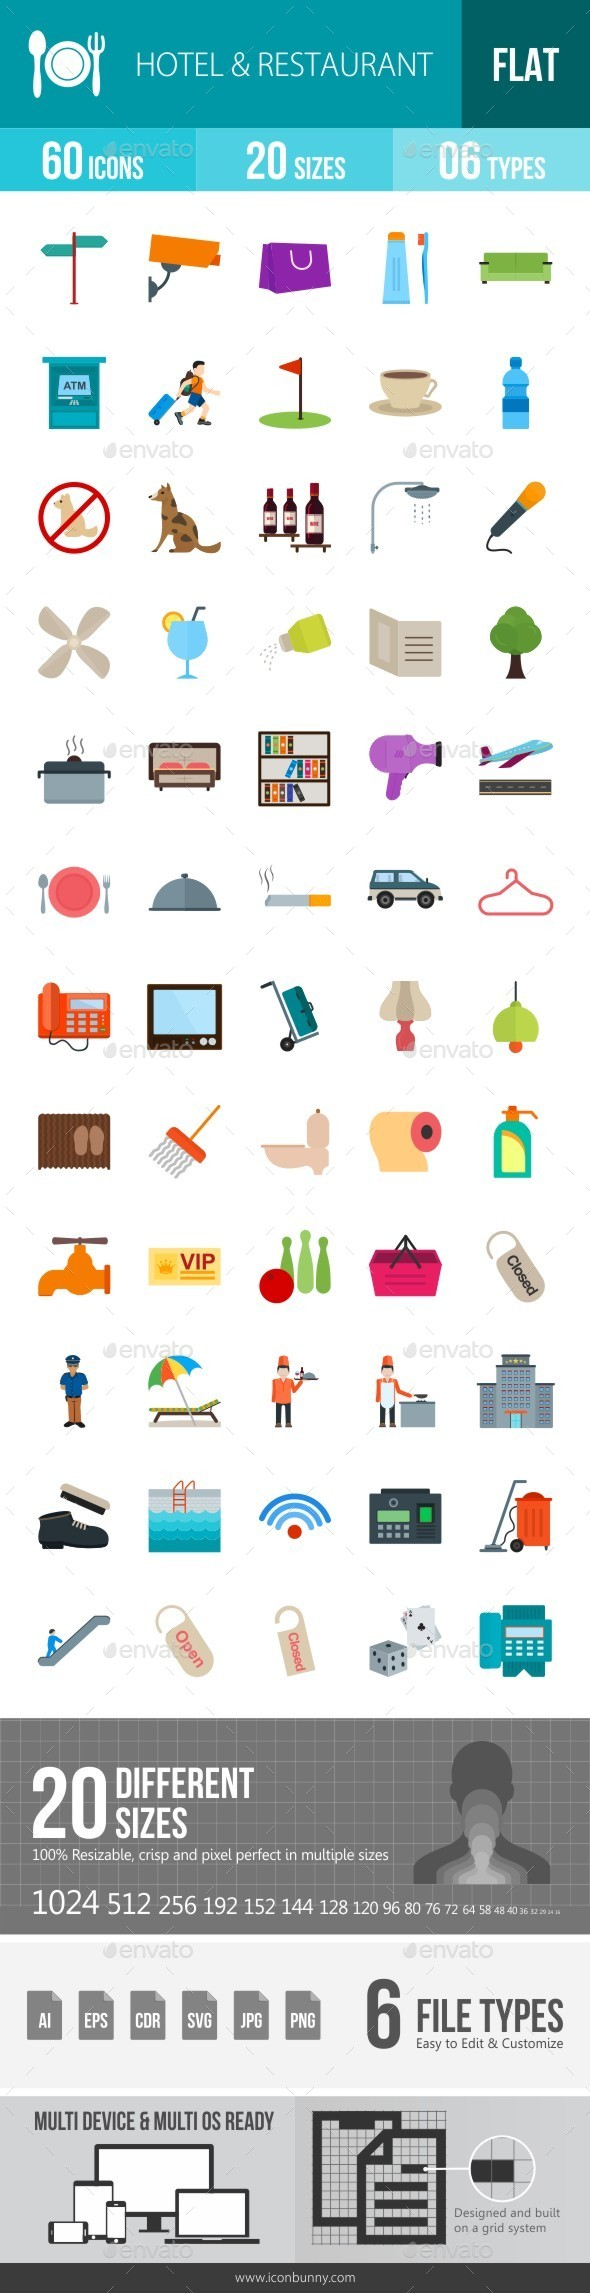 Hotel & Restaurant Flat Multicolor Icons - Icons